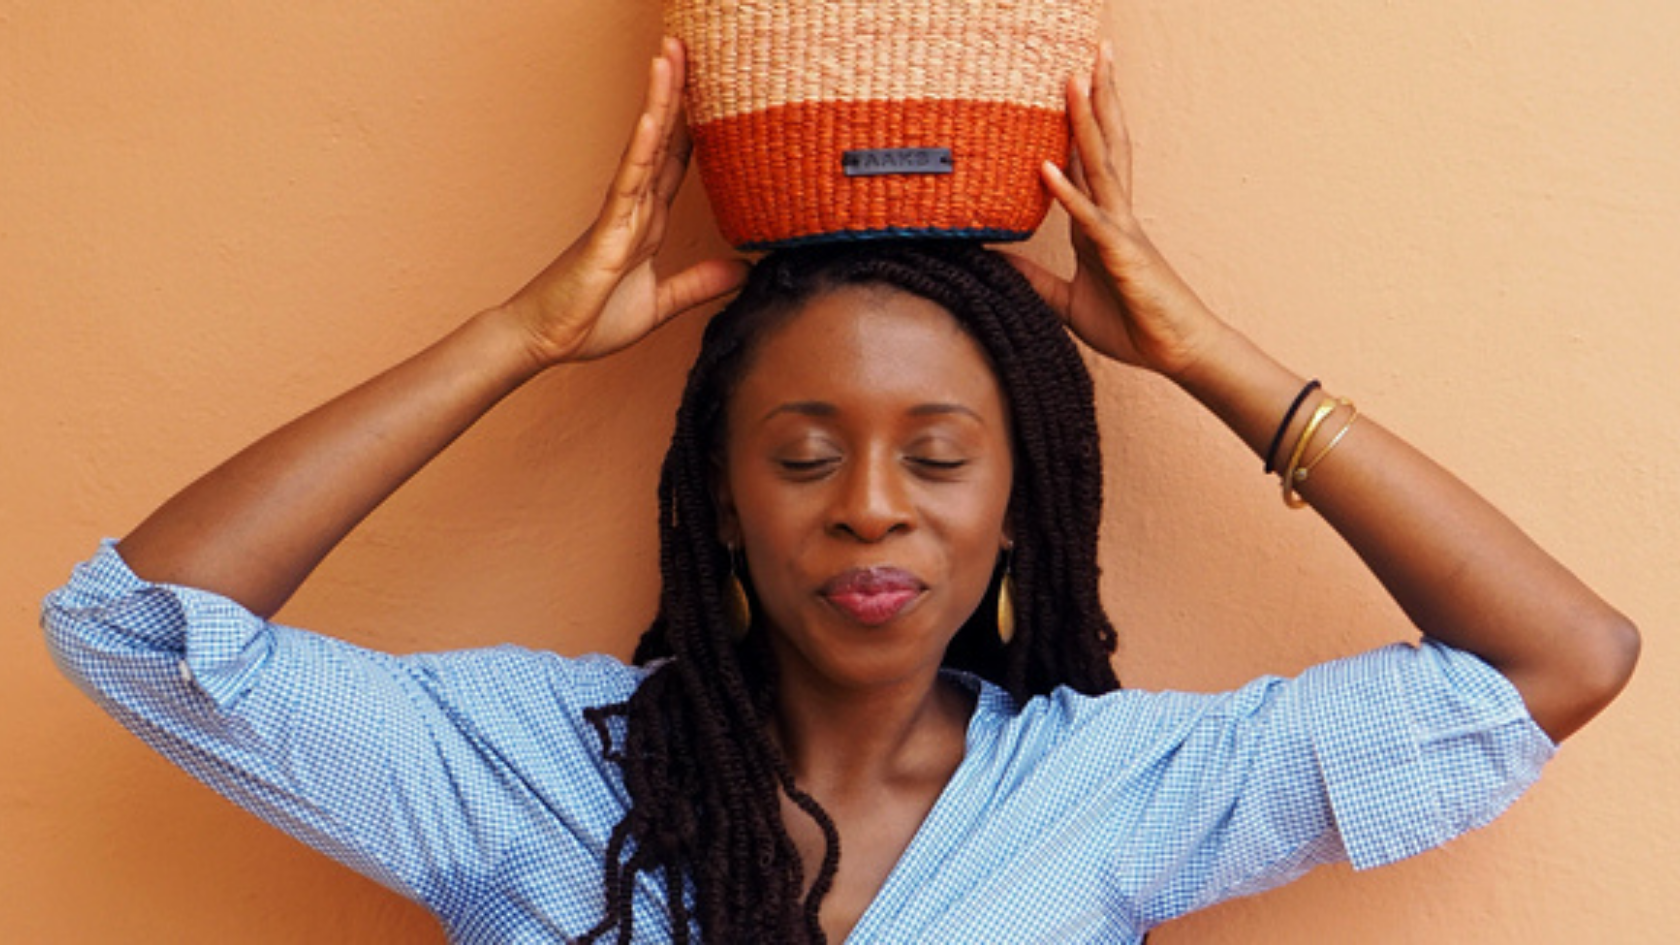 AKOSUA THE FOUNDER OF AAKS WEARING A BLUE SHIRT HOLDING HER ORANGE BAG